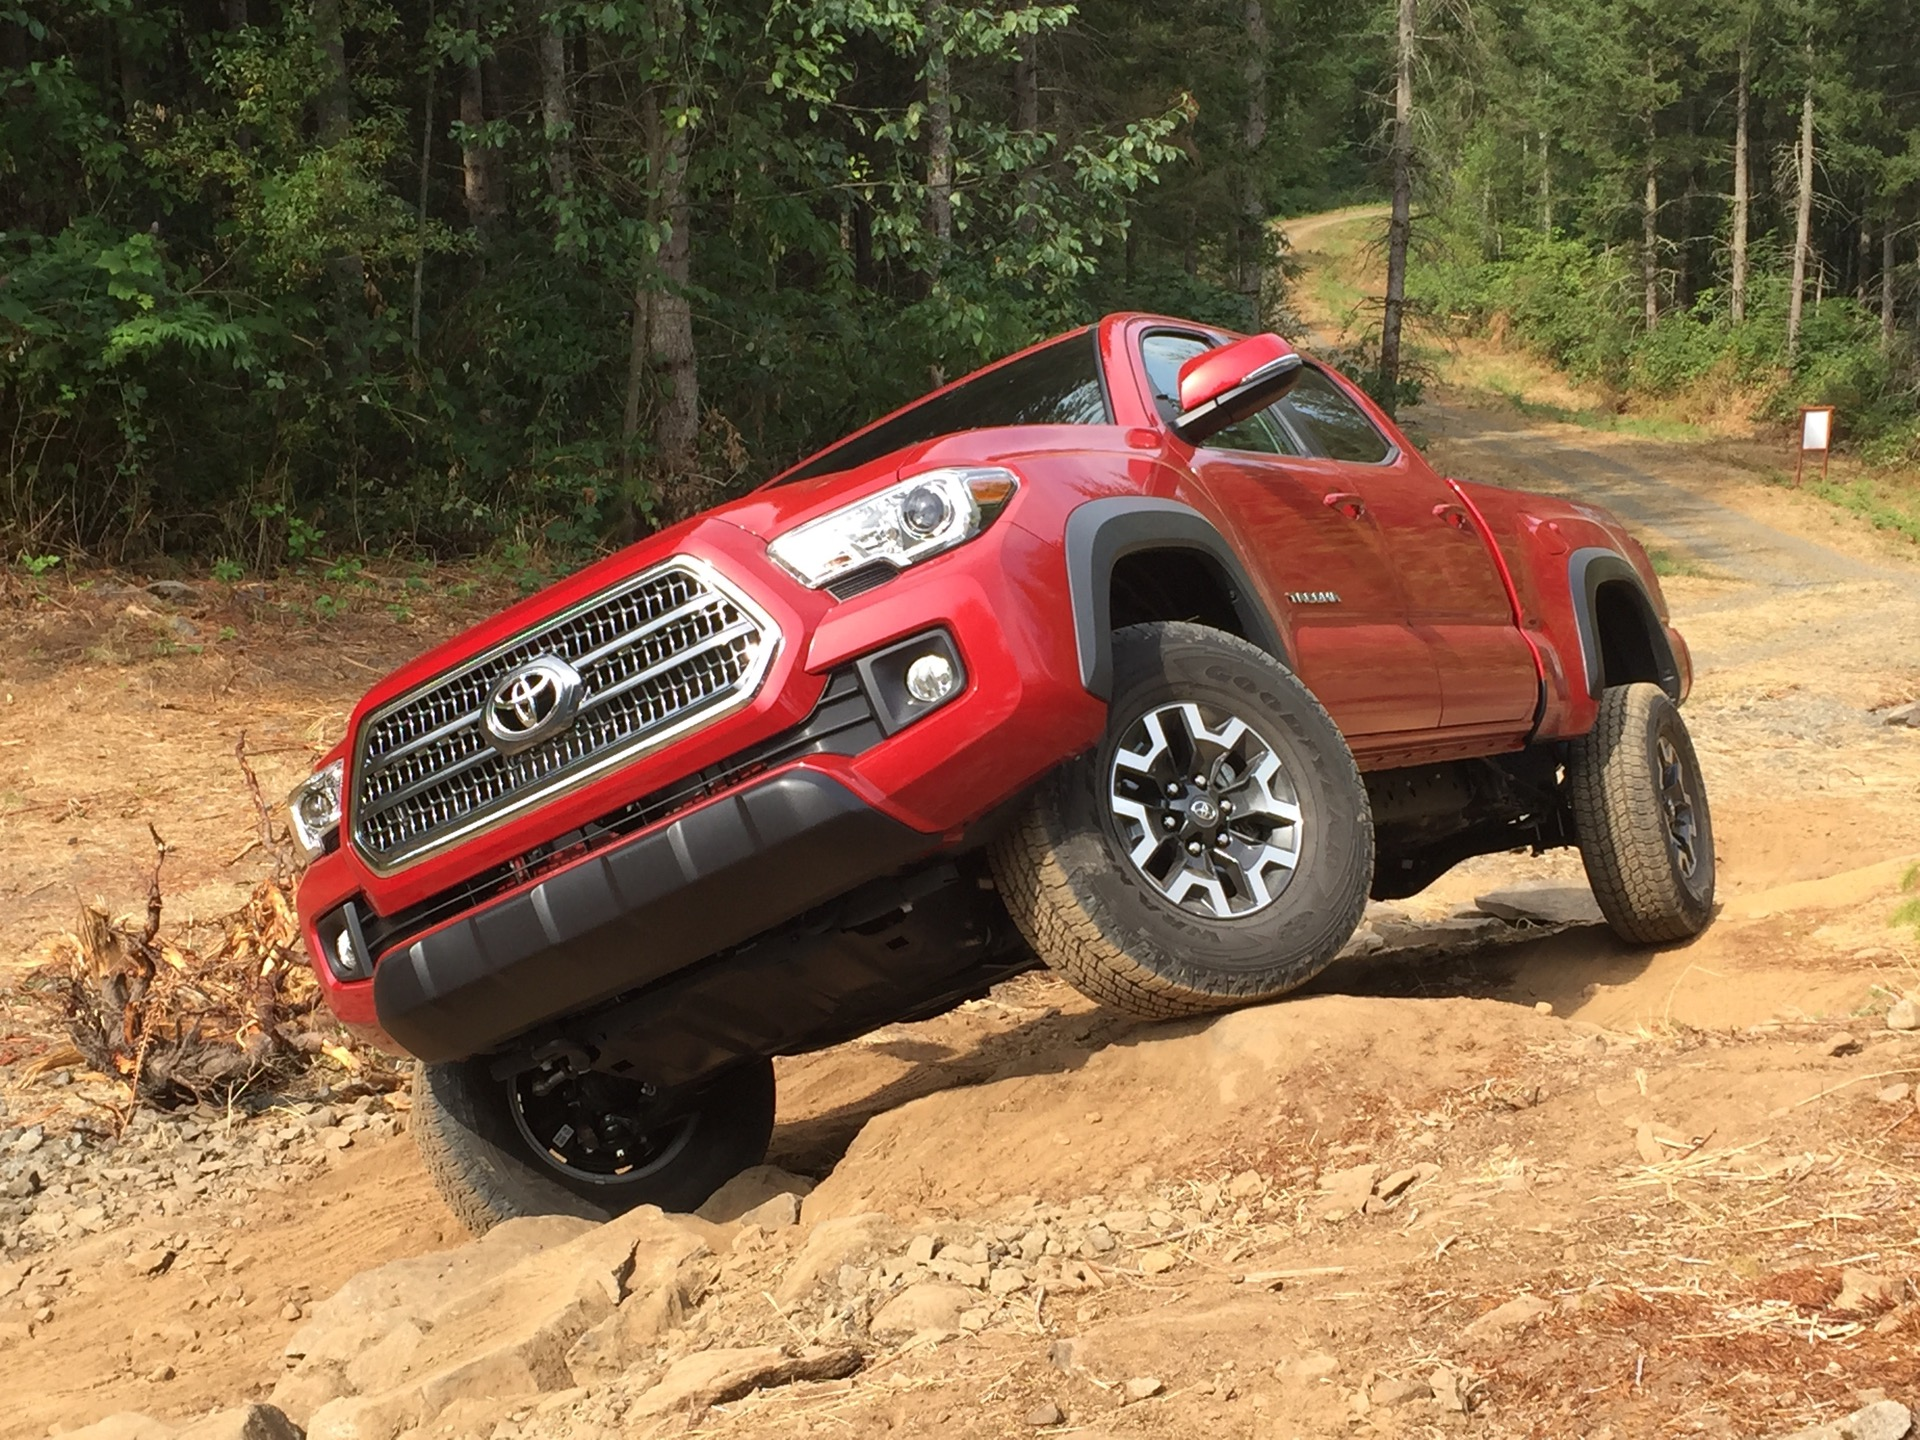 Rip nissan xterra 2016 toyota tacoma first drive vanachro Images